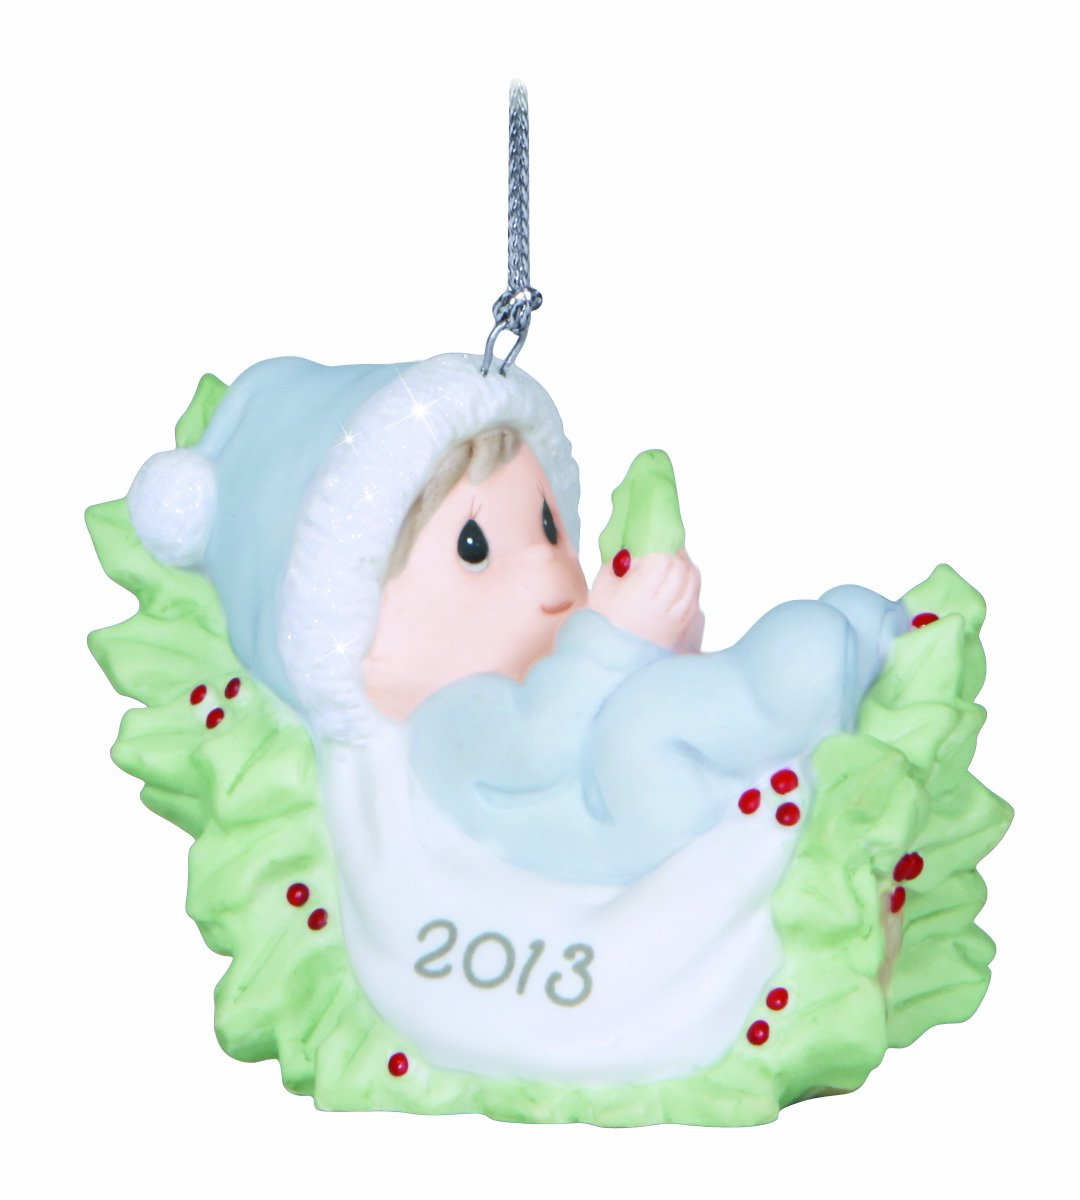 Amazon.com: Precious Moments Dated 2013 Baby Boy First Christmas ...